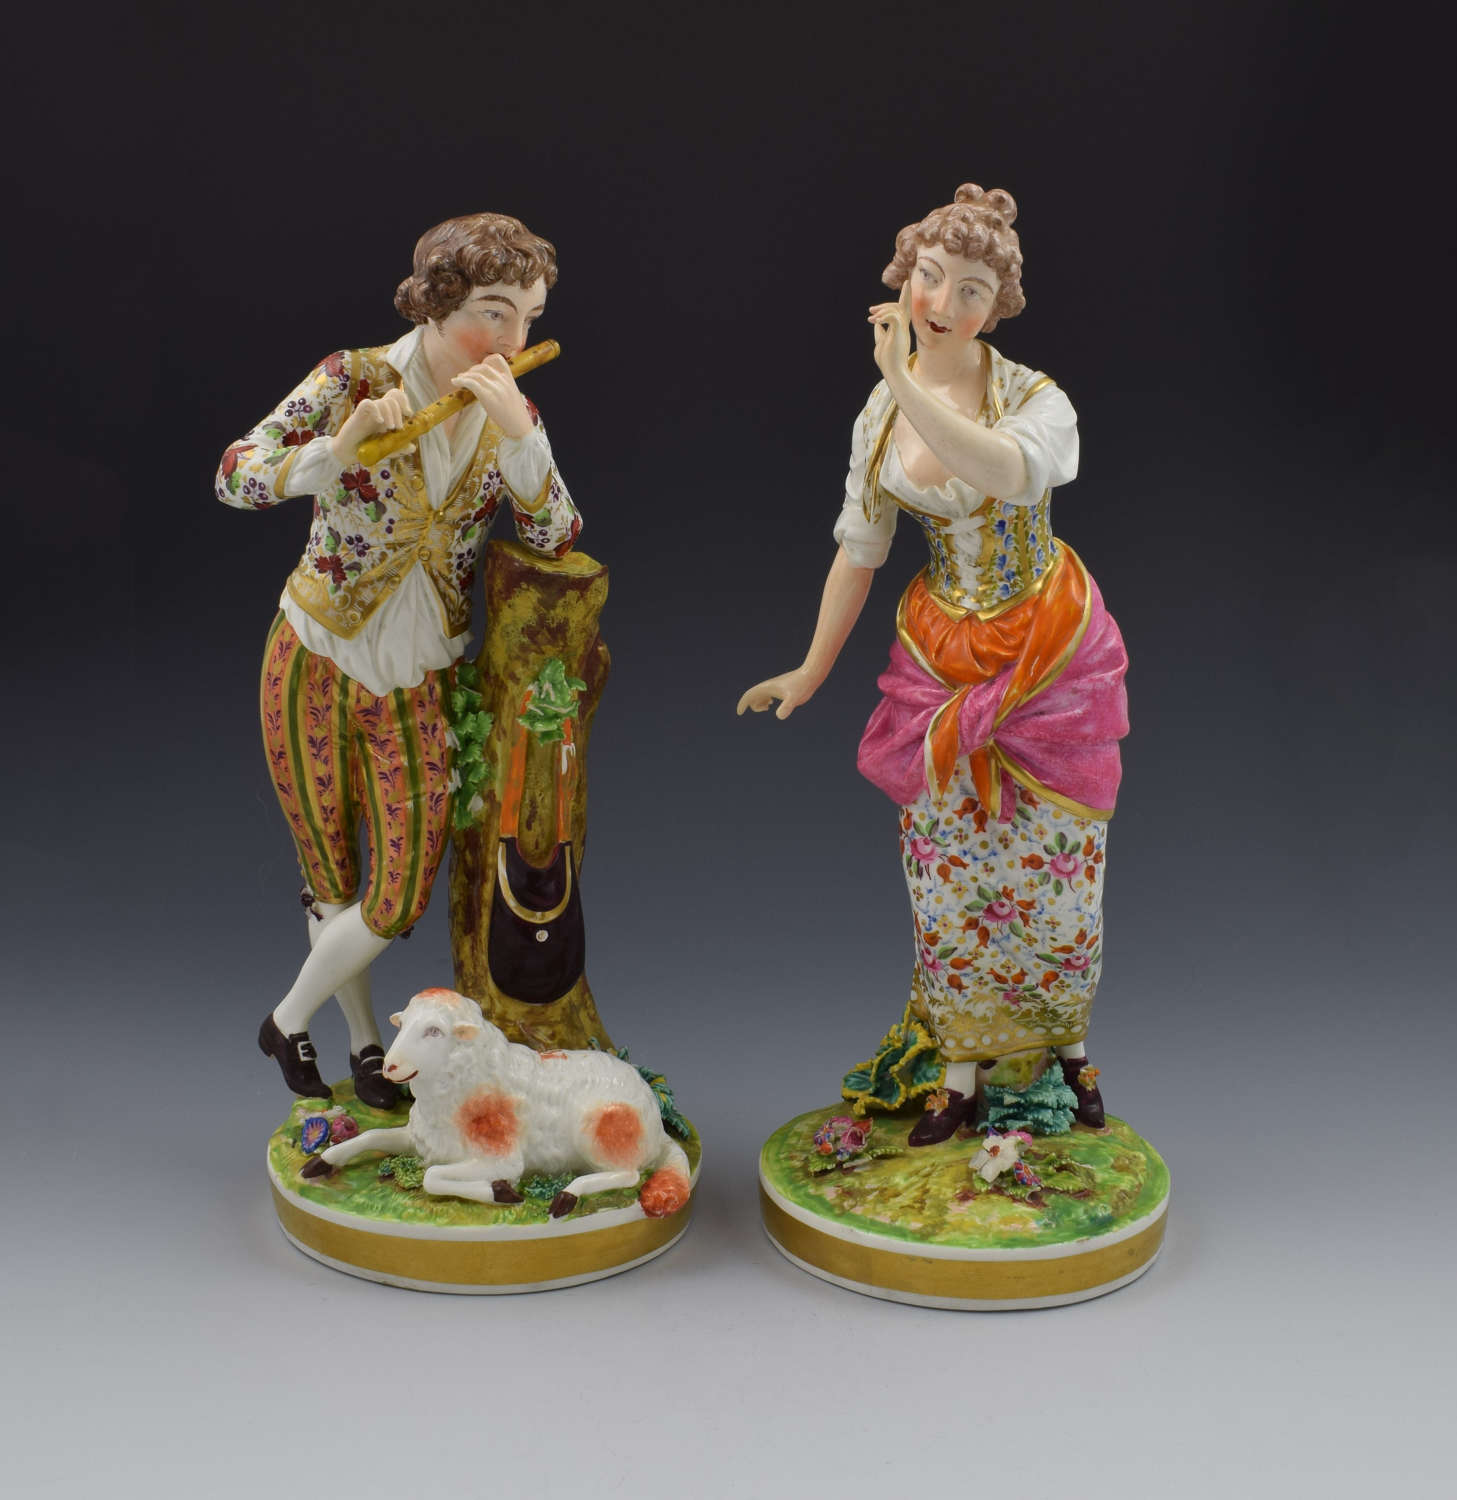 Large Pair Bloor Derby Porcelain Figures Shepherd & Shepherdess N369